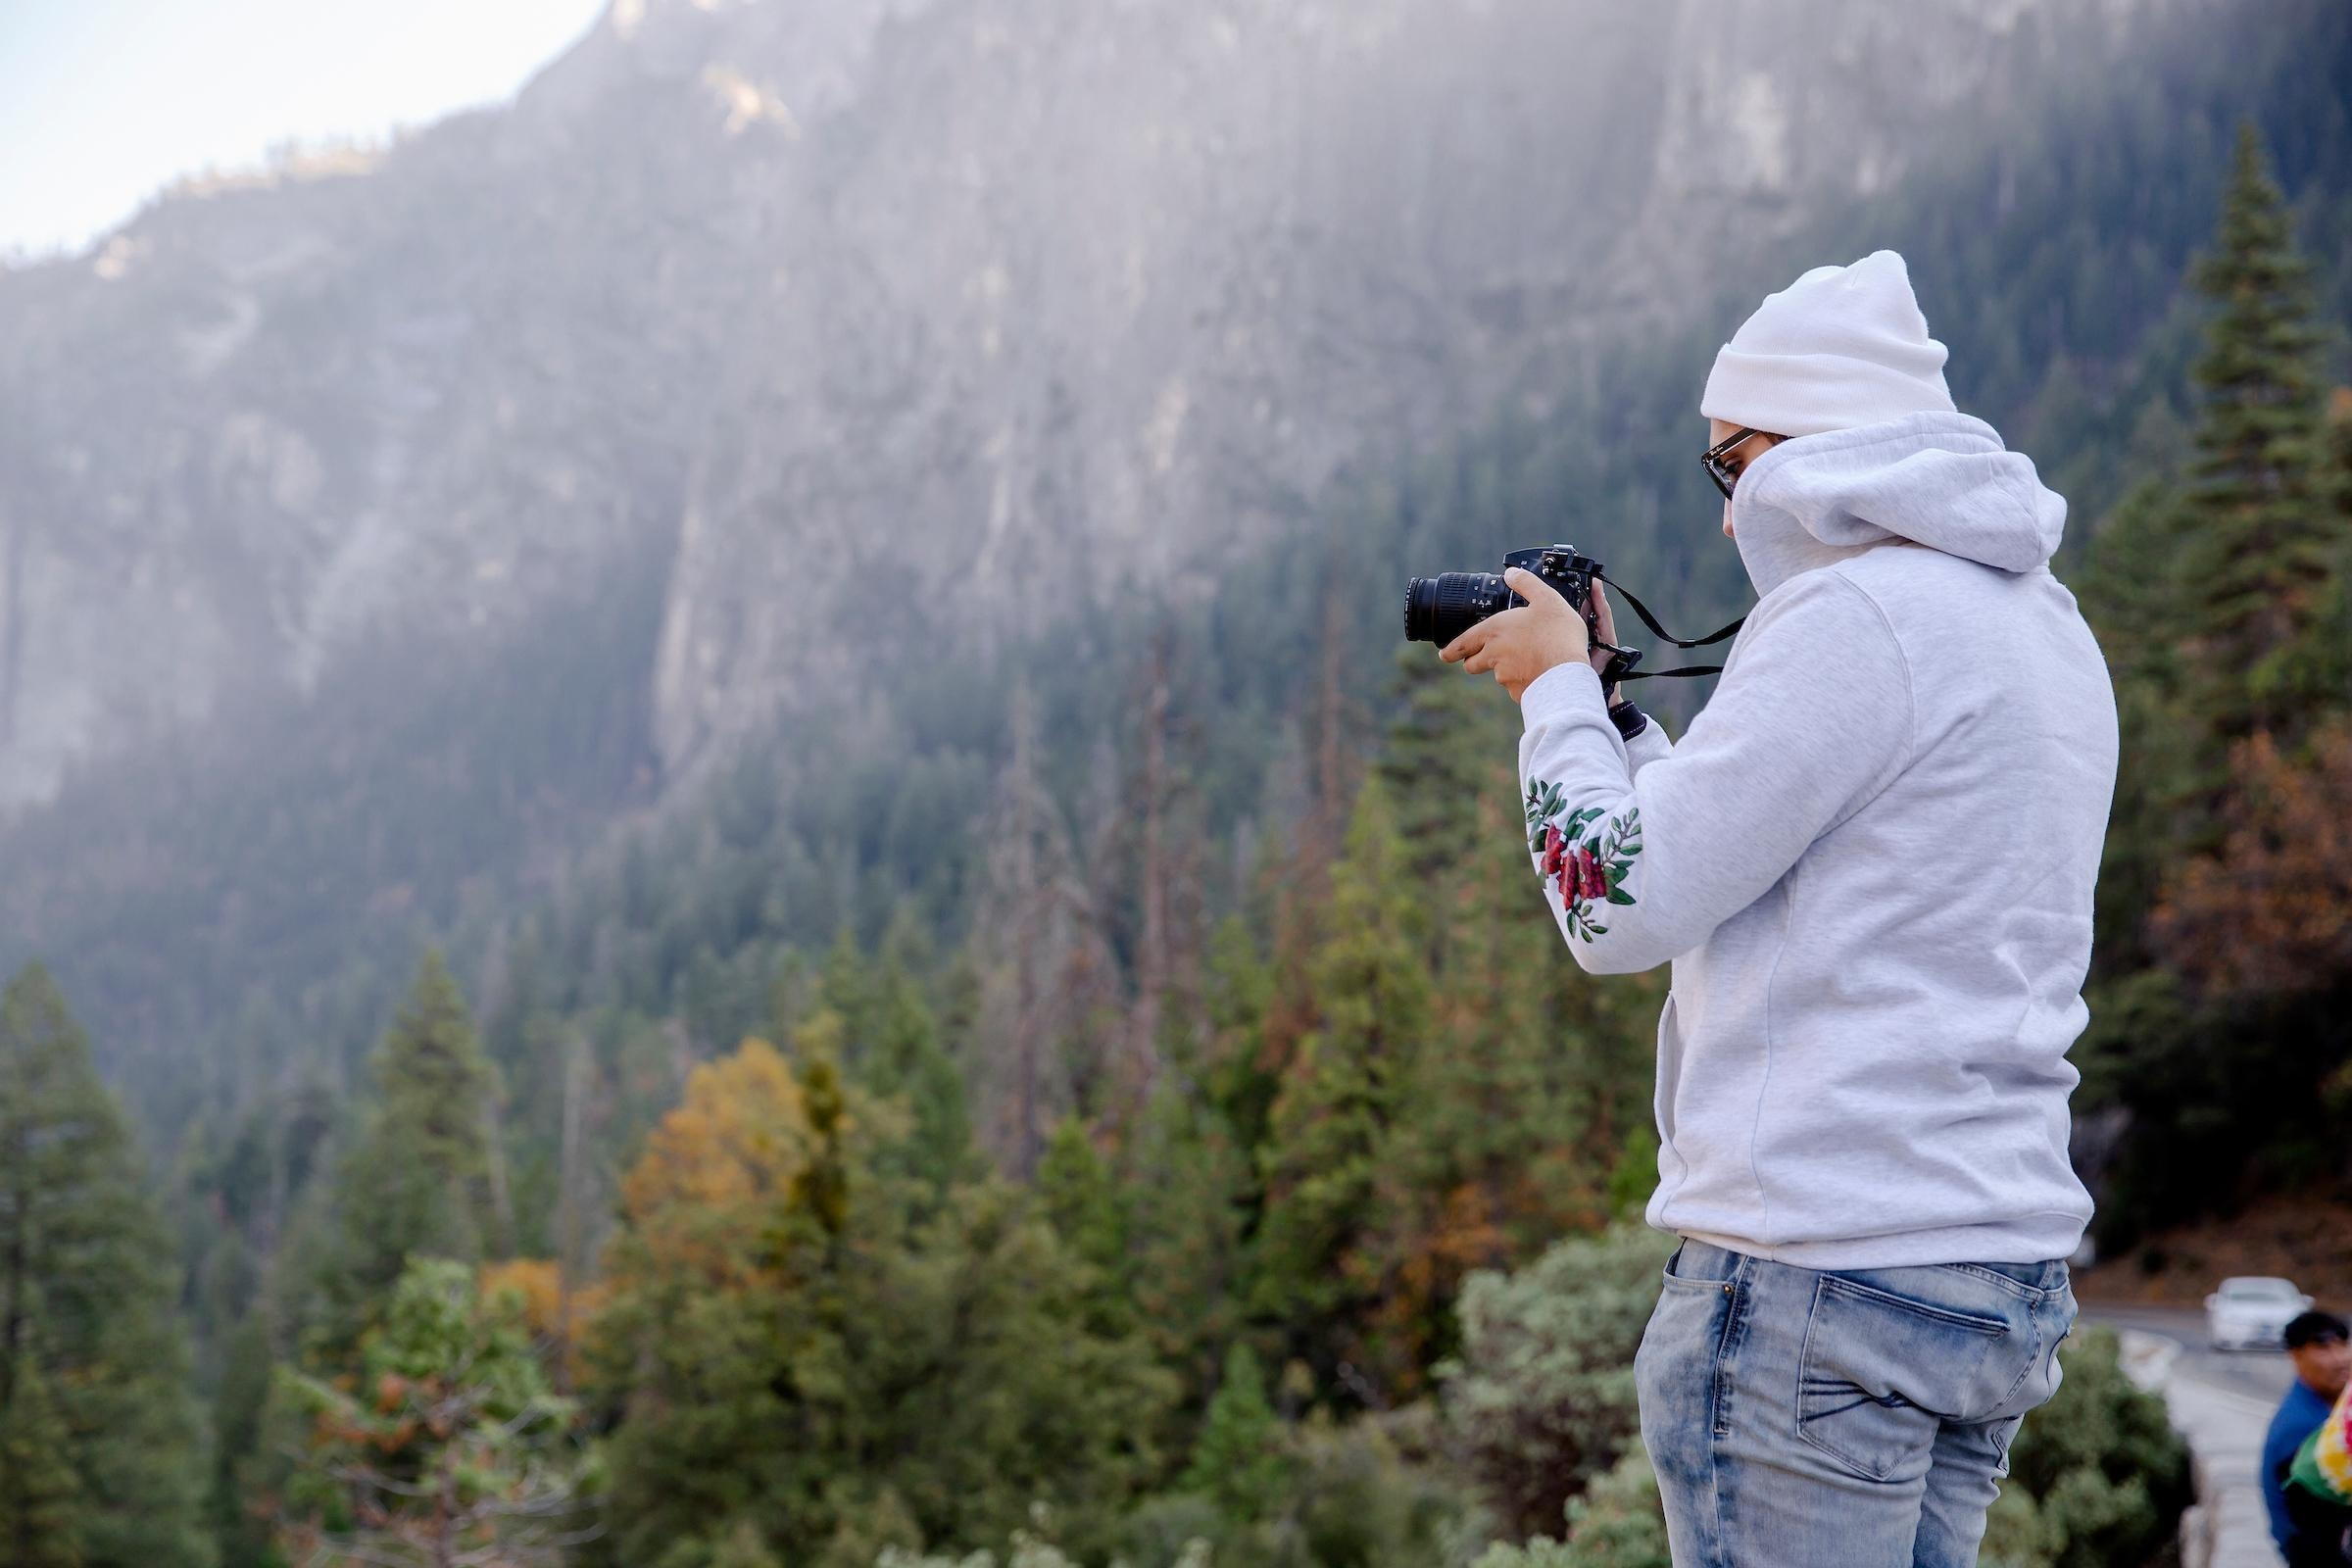 Where to Find the Best Photo Ops in Yosemite